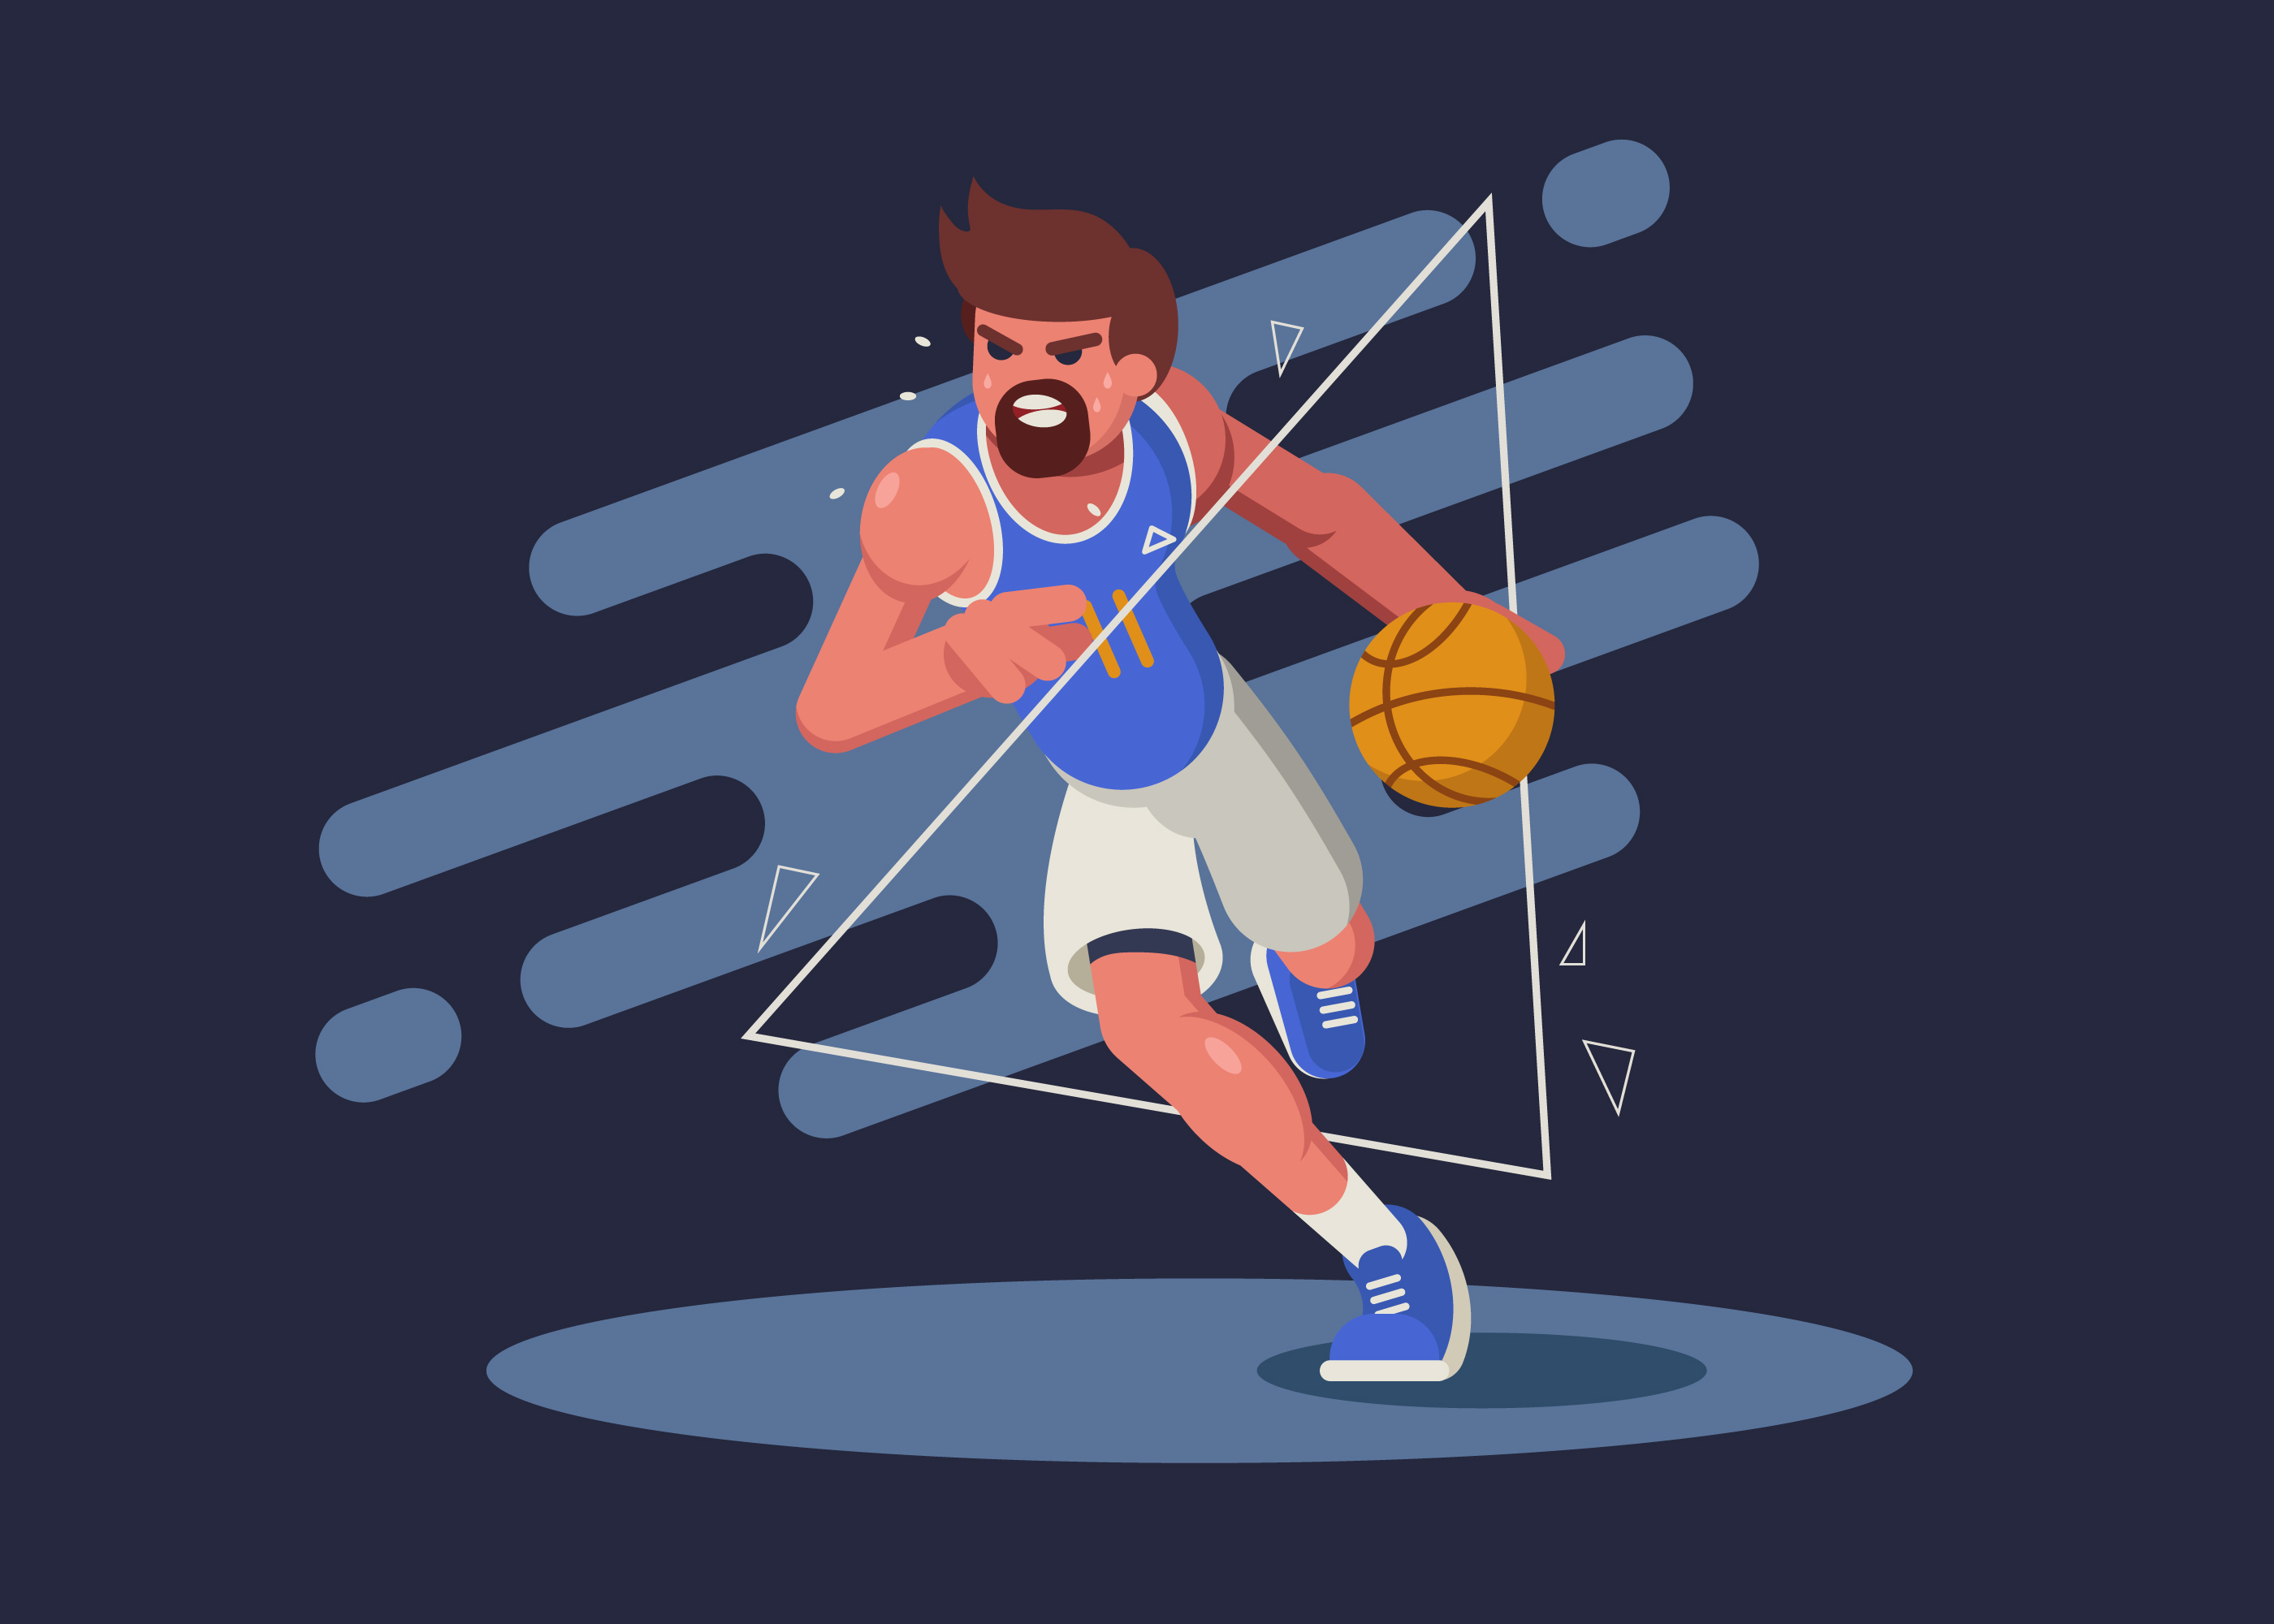 Basketball Player Drive Illustration - Download Free ...